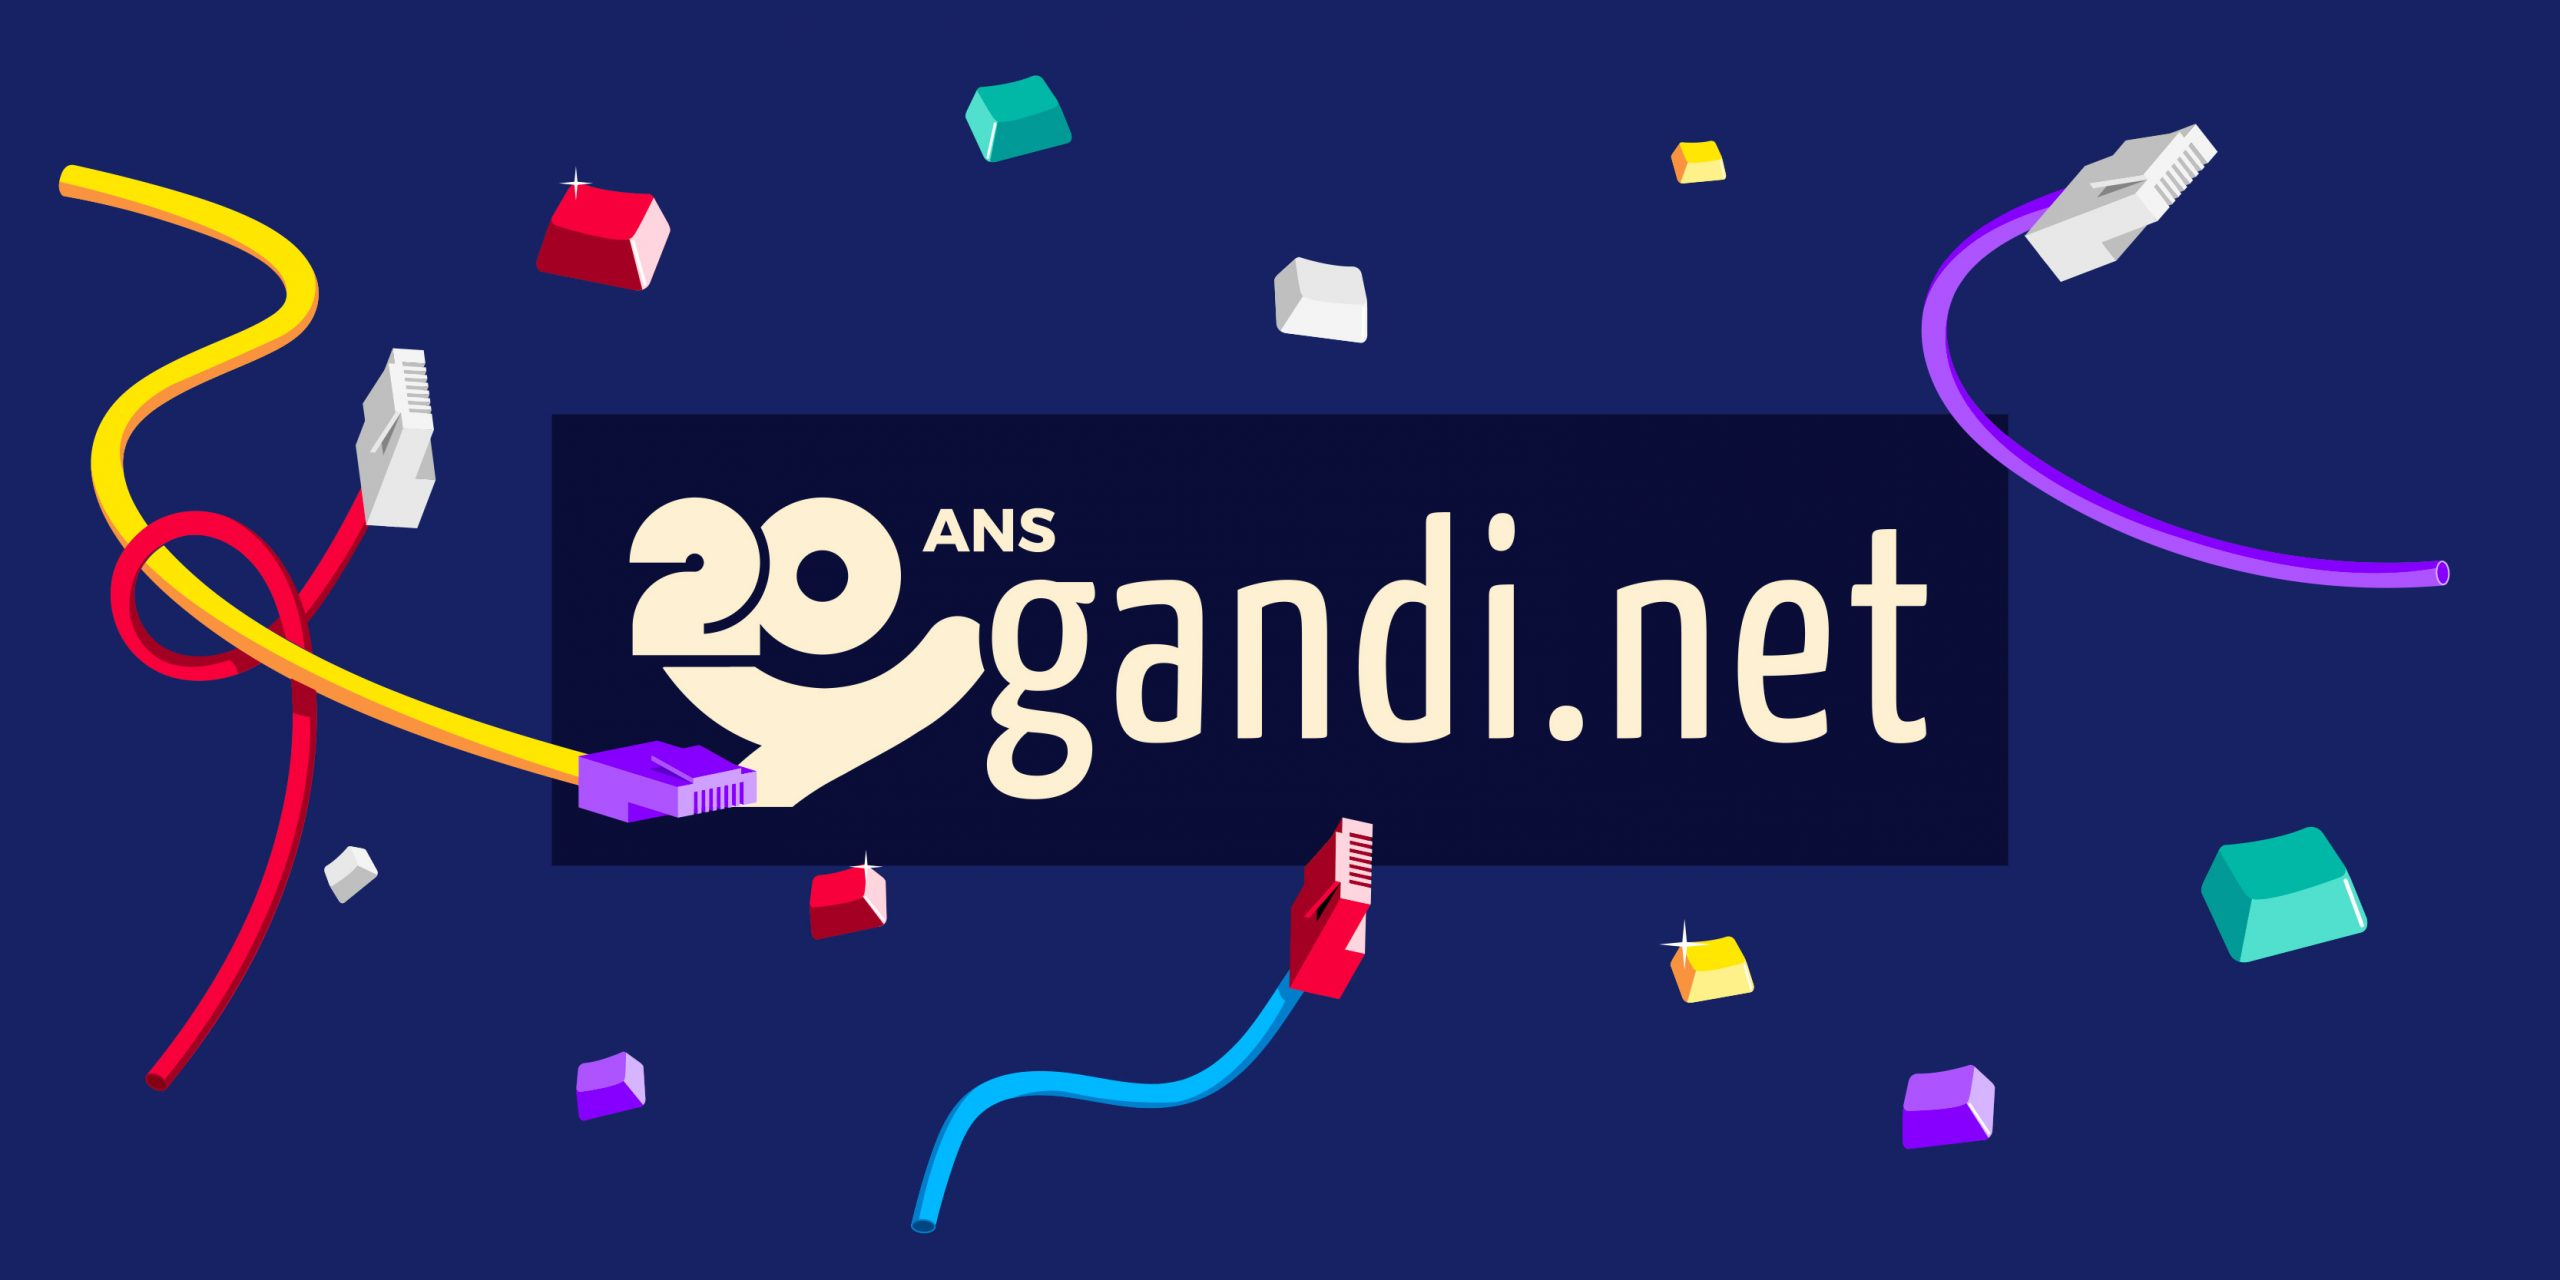 The leading creations in the #Gandi20 t-shirt design contest